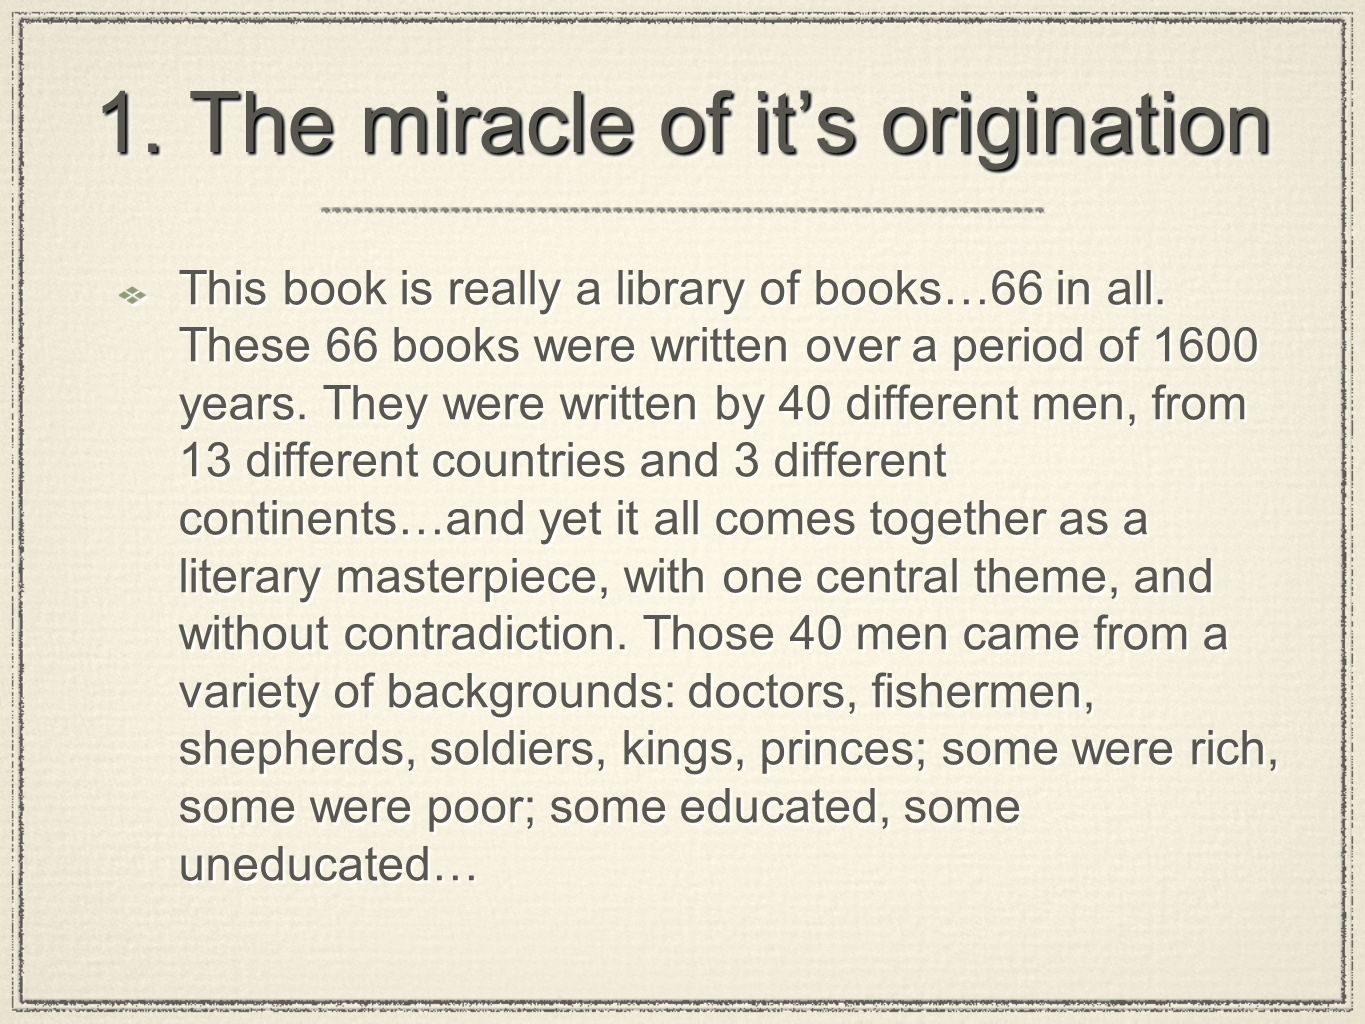 1. The miracle of it's origination